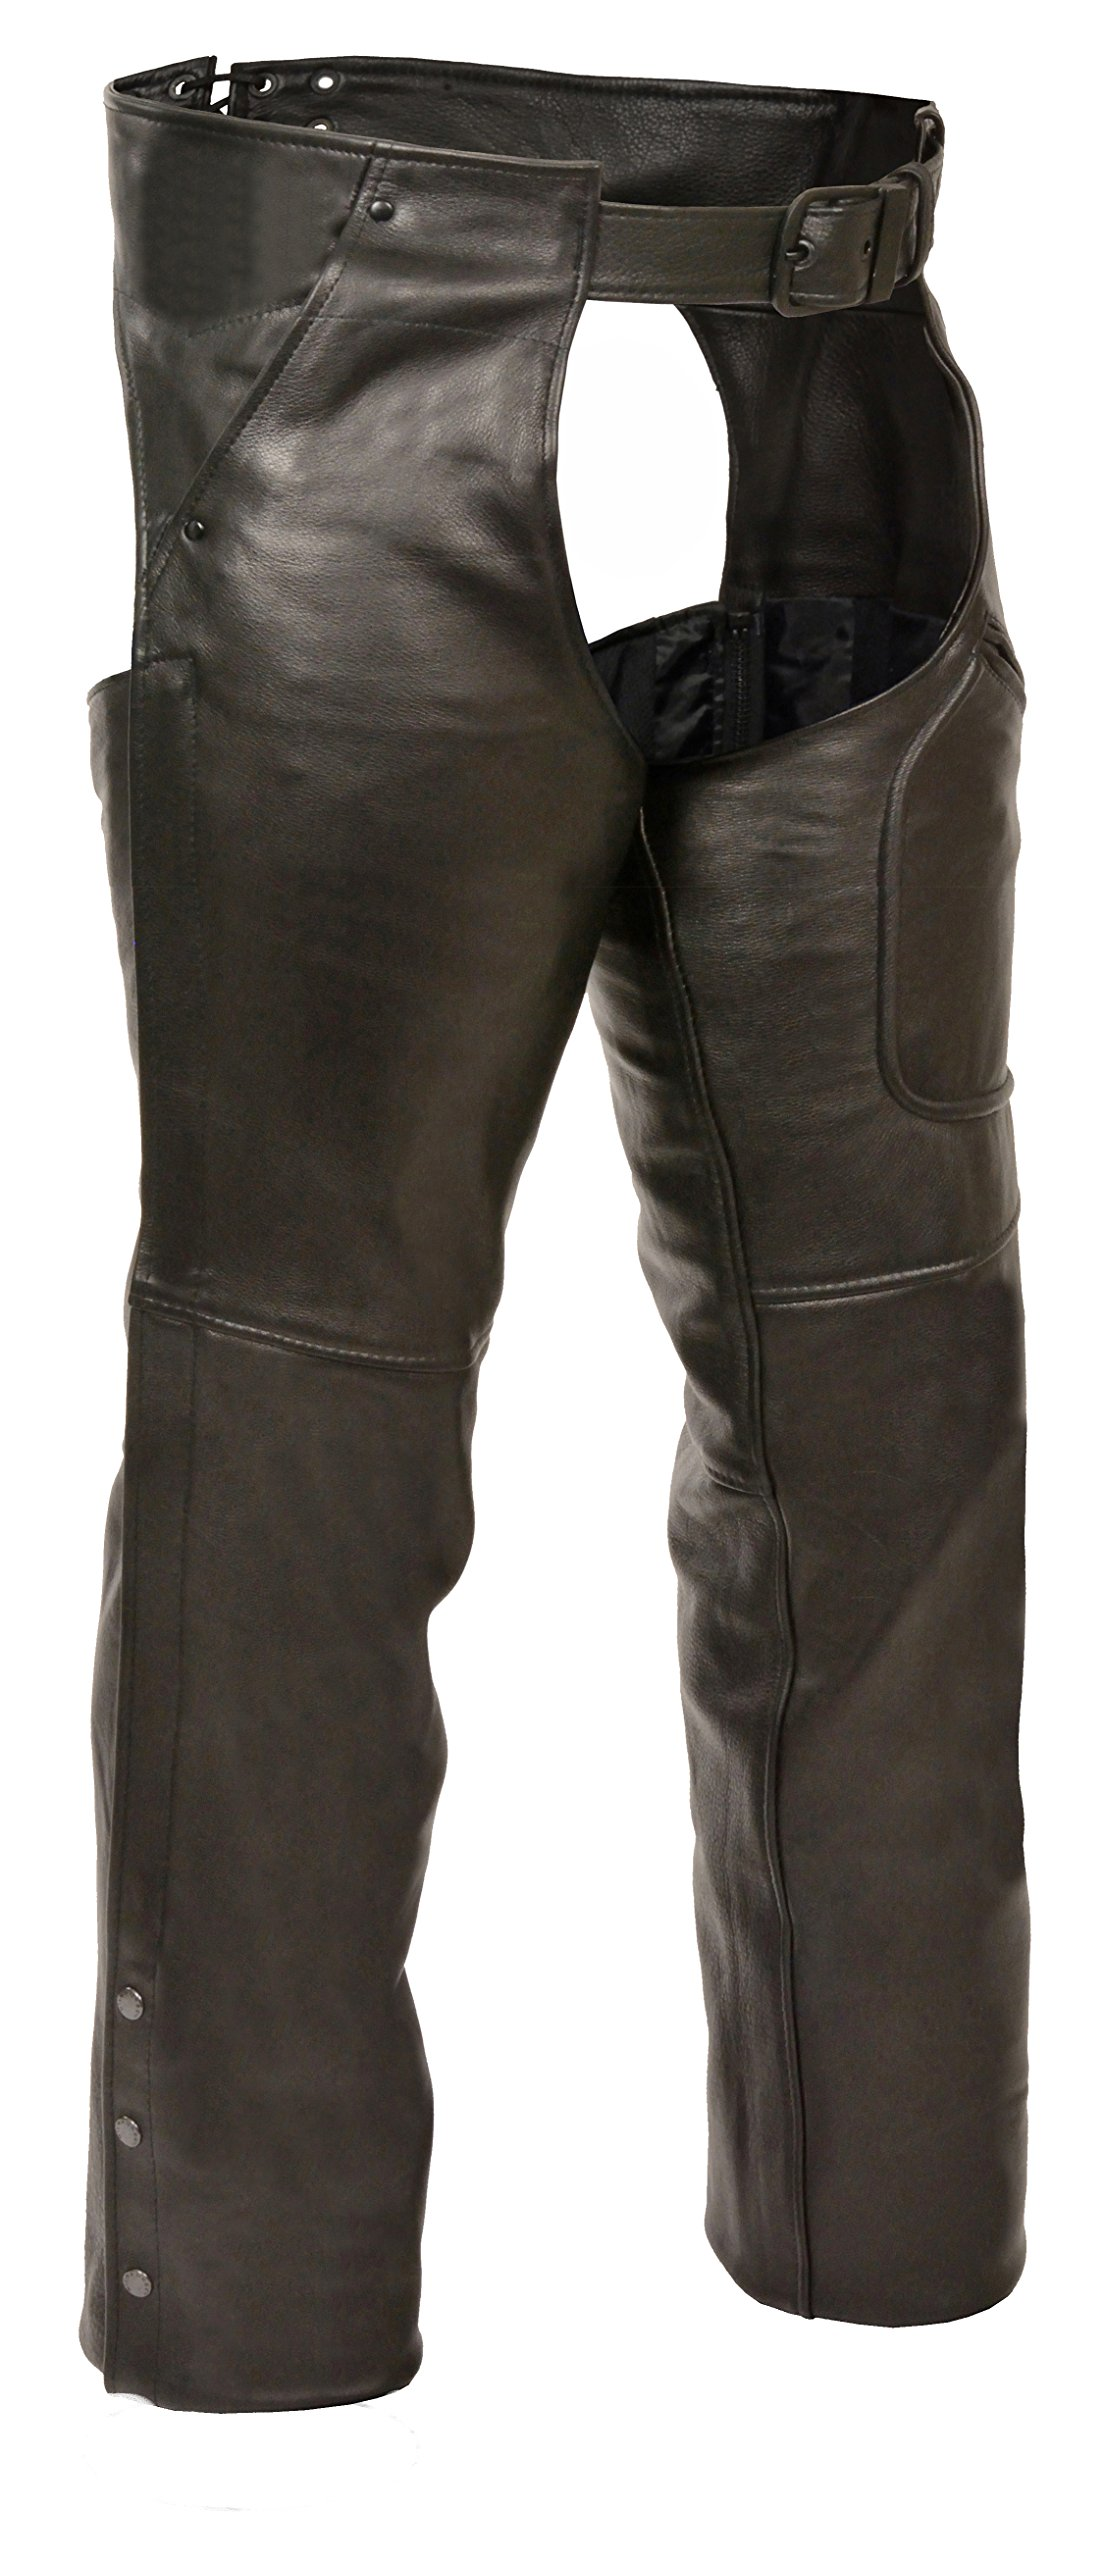 Milwaukee Men's 3 Pocket Chap with Thigh Patch Pocket (Black, X-Small)